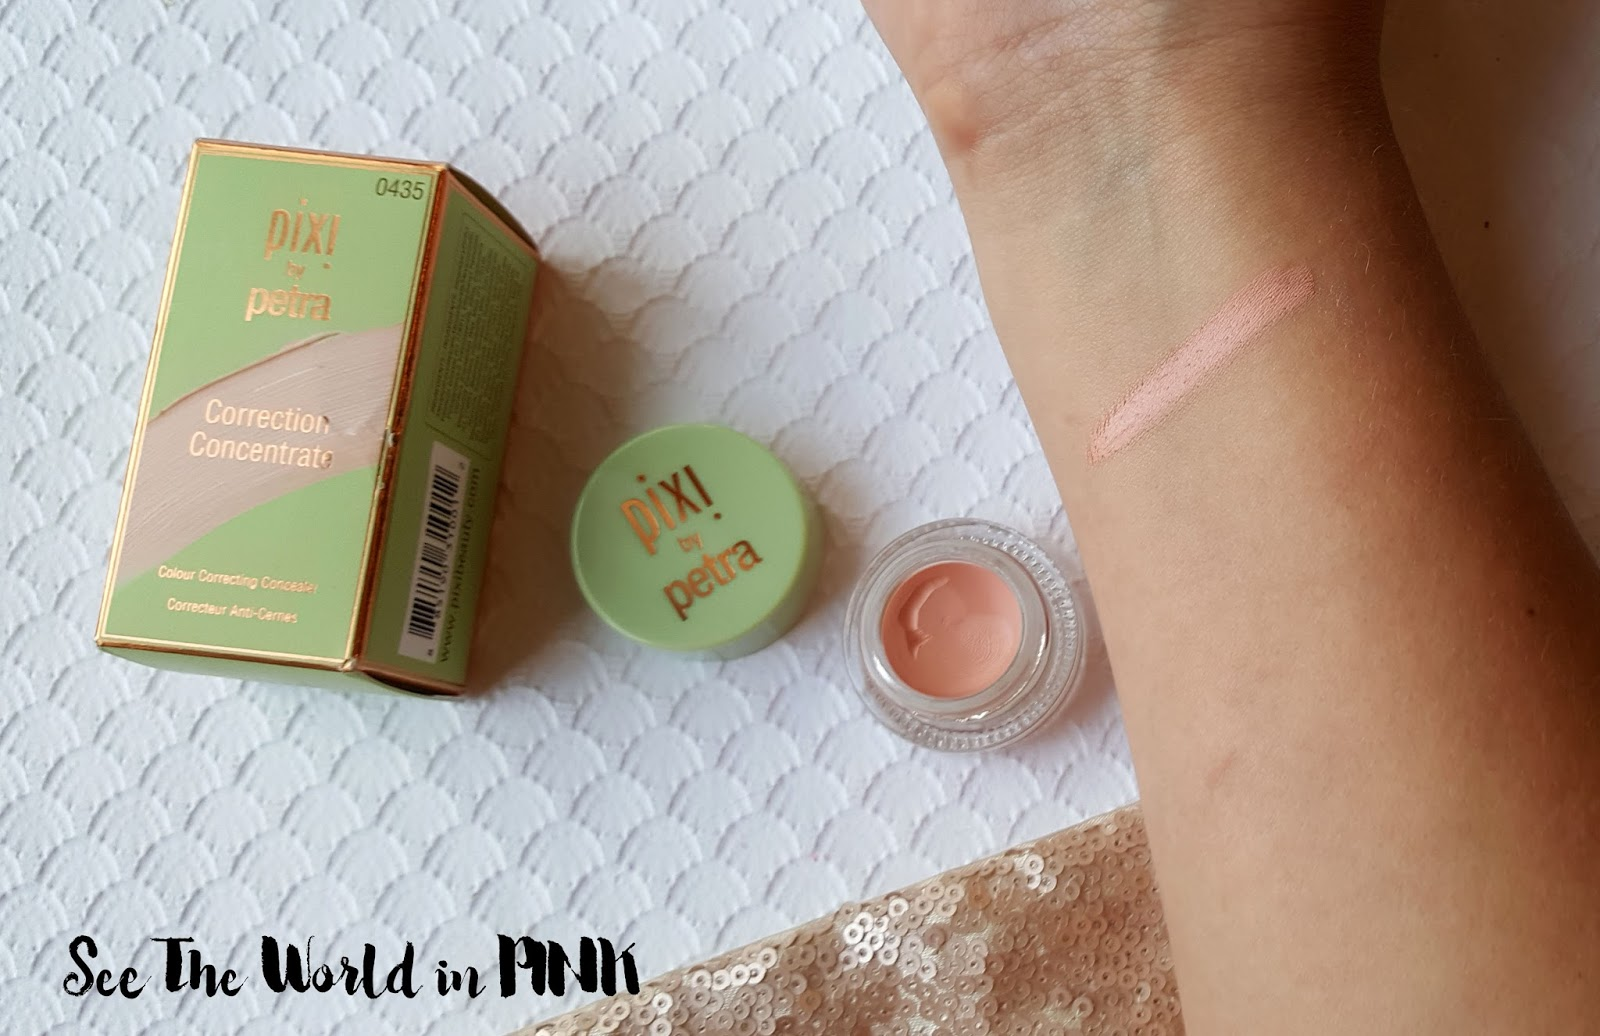 Pixi Beauty - Mini Haul, First Impressions and Thoughts!!!